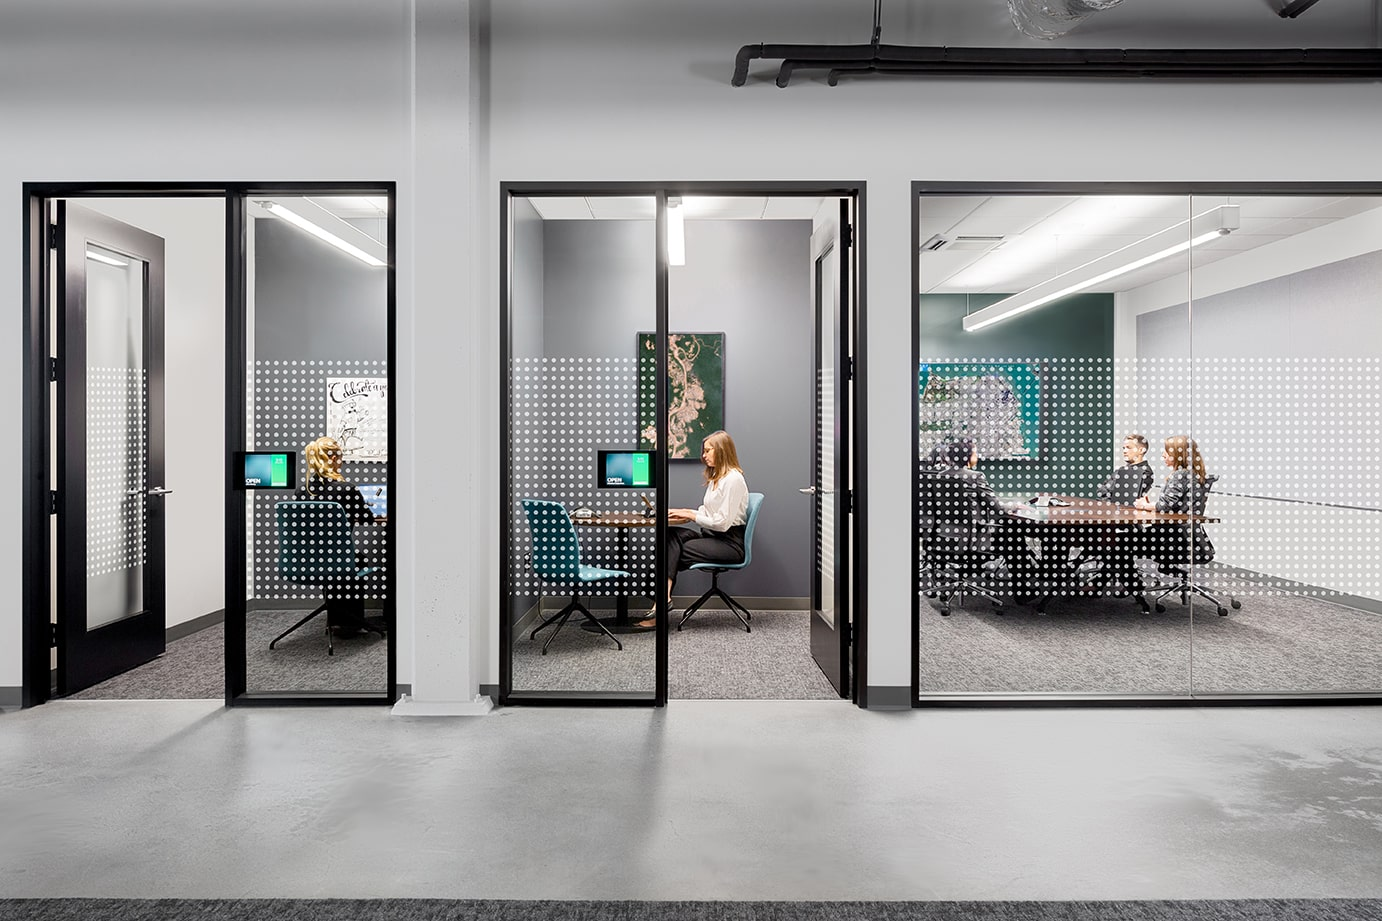 Planet Labs Headquarters by Quezada Architecture (Fred Quezada, Cecilia Quezada, Ed Tingley)